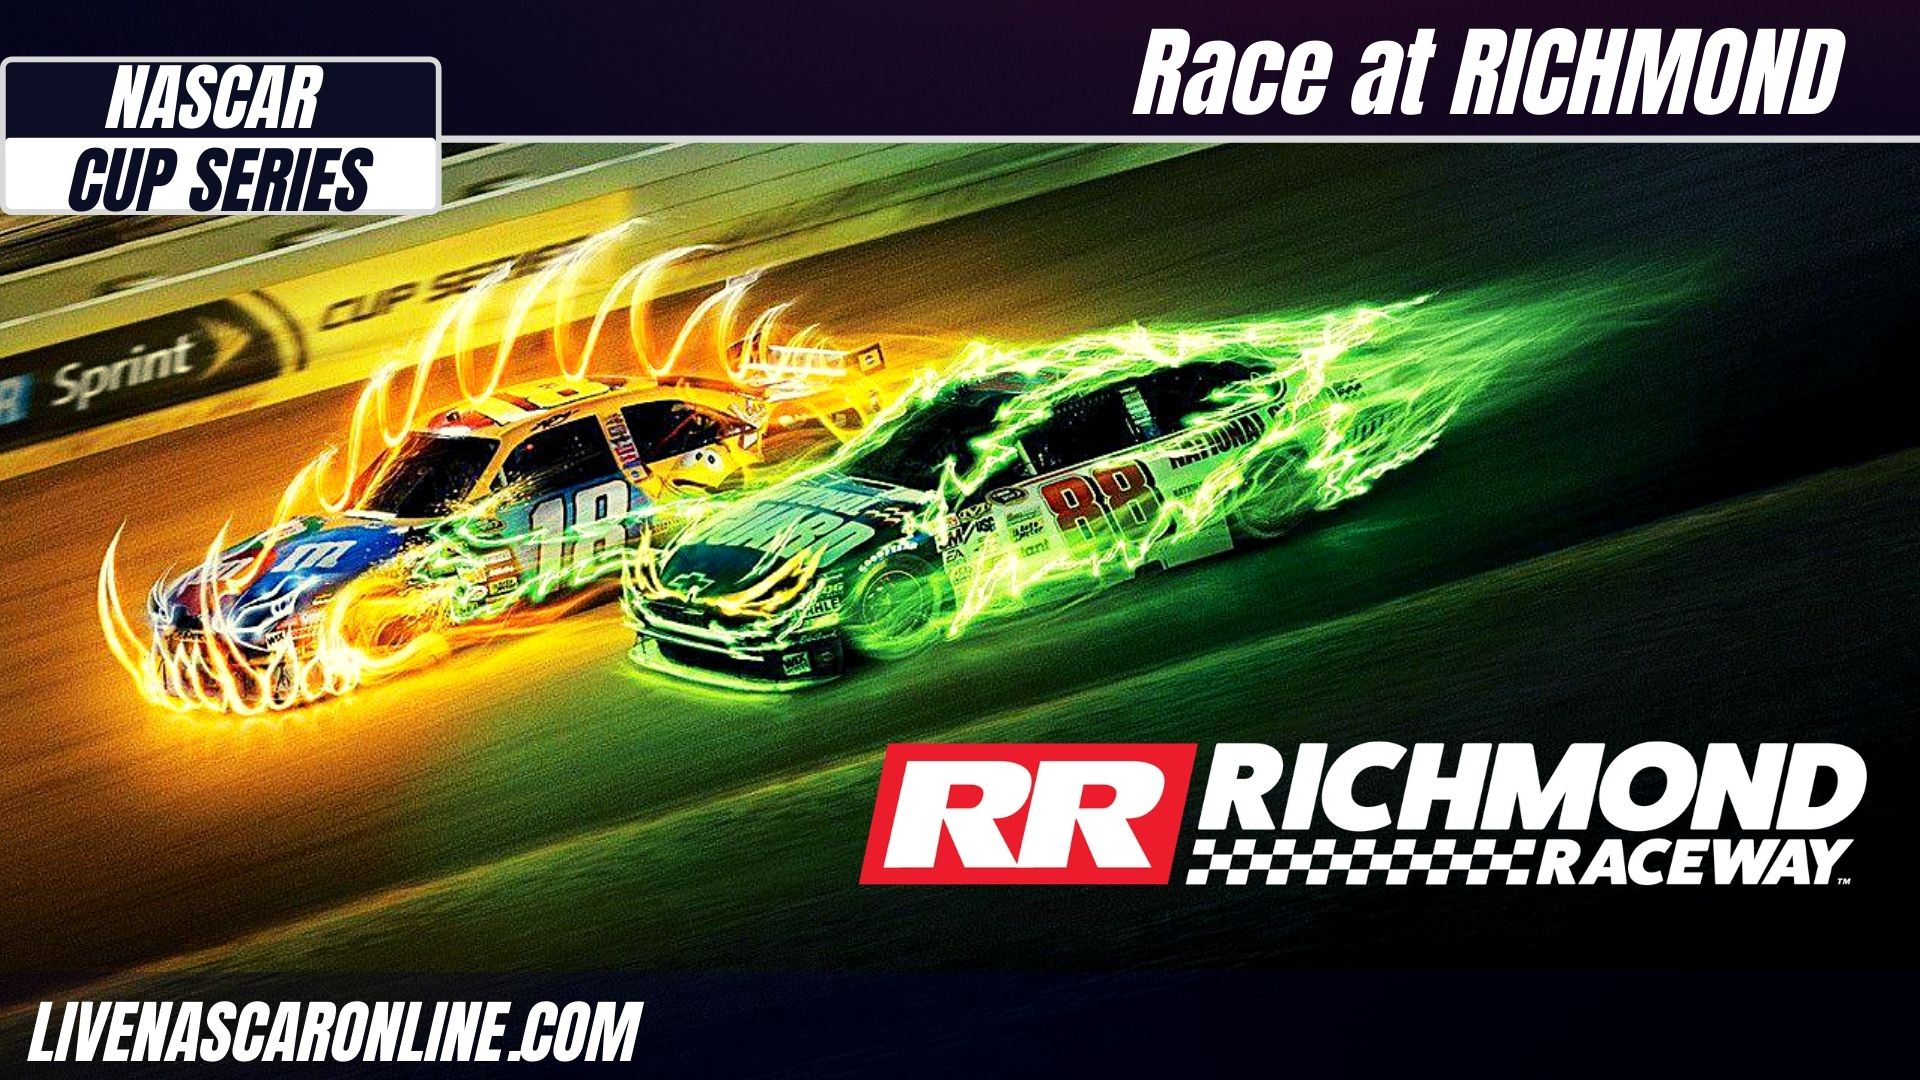 NASCAR Playoff Race at Richmond Live Stream 2021